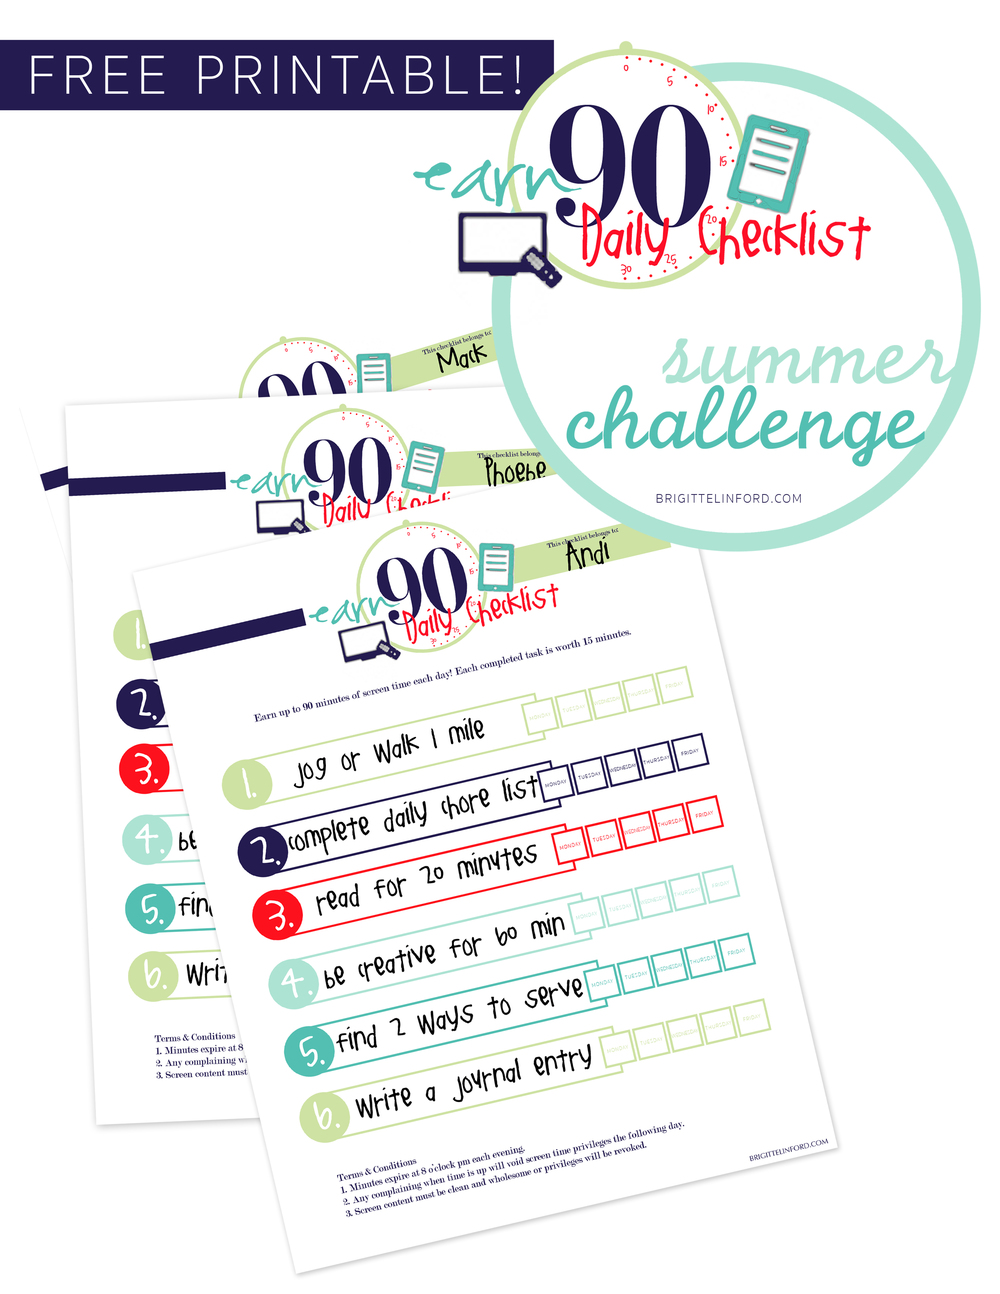 A SUMMER CHALLENGE FOR CHILDREN TO EARN 90 MINUTES OF DAILY SCREEN TIME. FREE PRINTABLE!